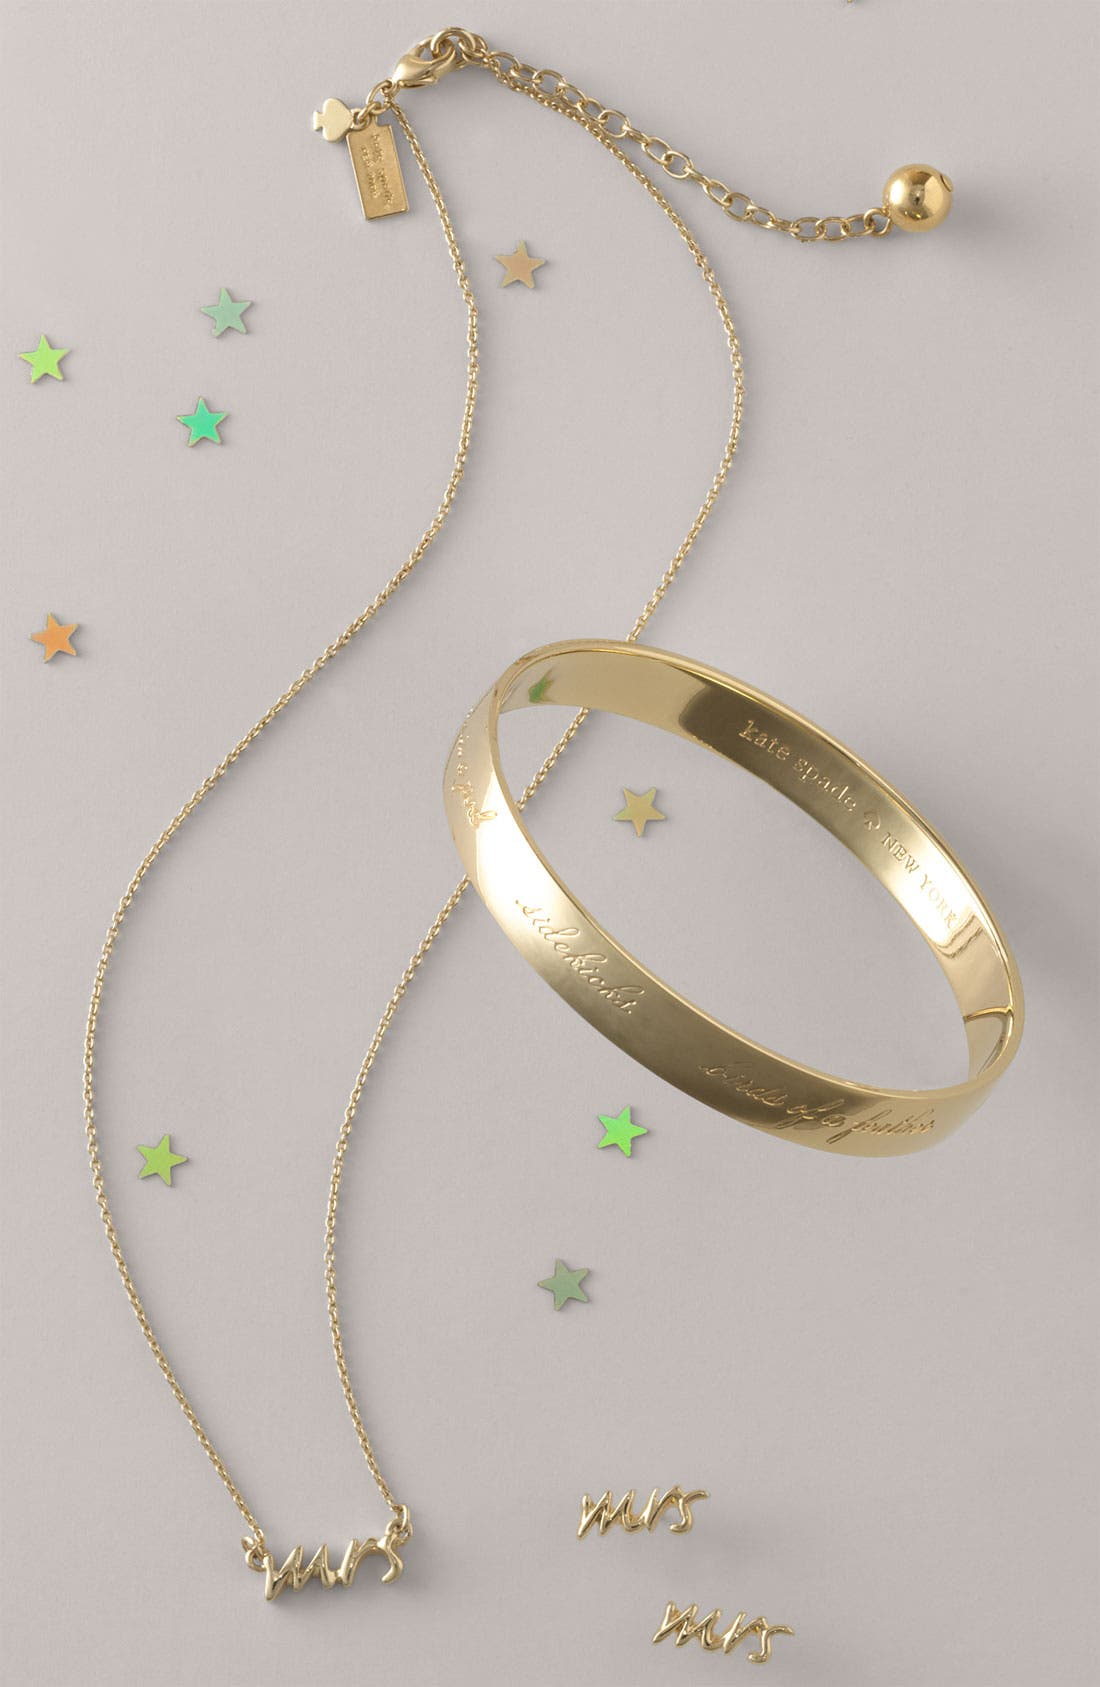 'idiom - bridesmaid' bangle,                             Alternate thumbnail 2, color,